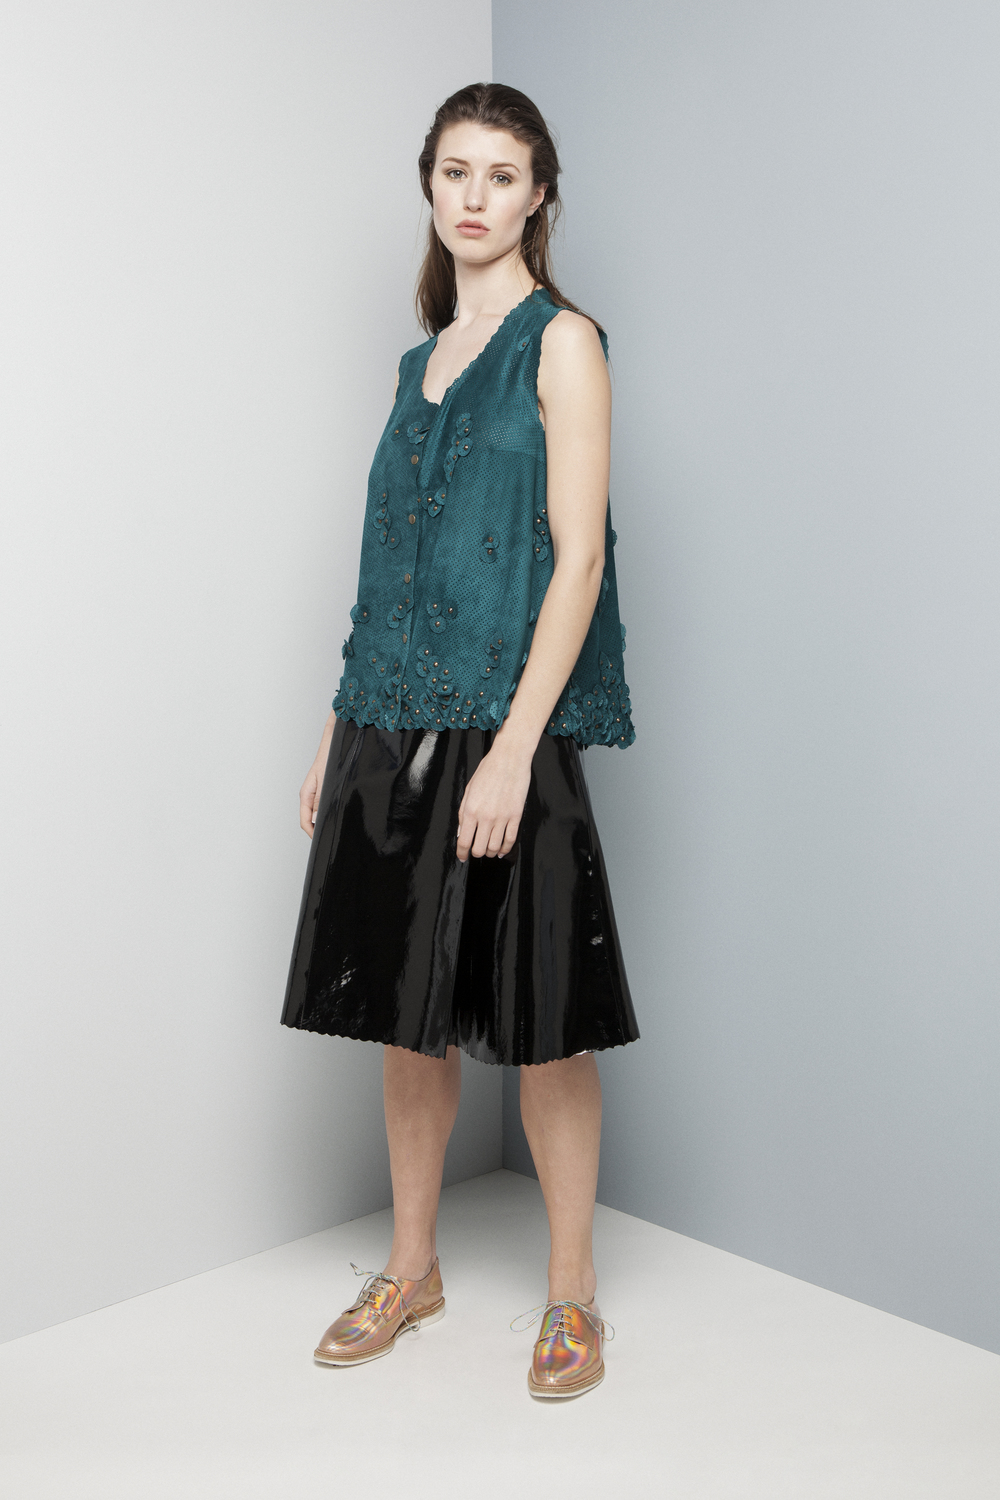 Manley AW14 Elsie Perforated Top (teal) €429 and Abbie Patent Skirt (black) €399.jpg